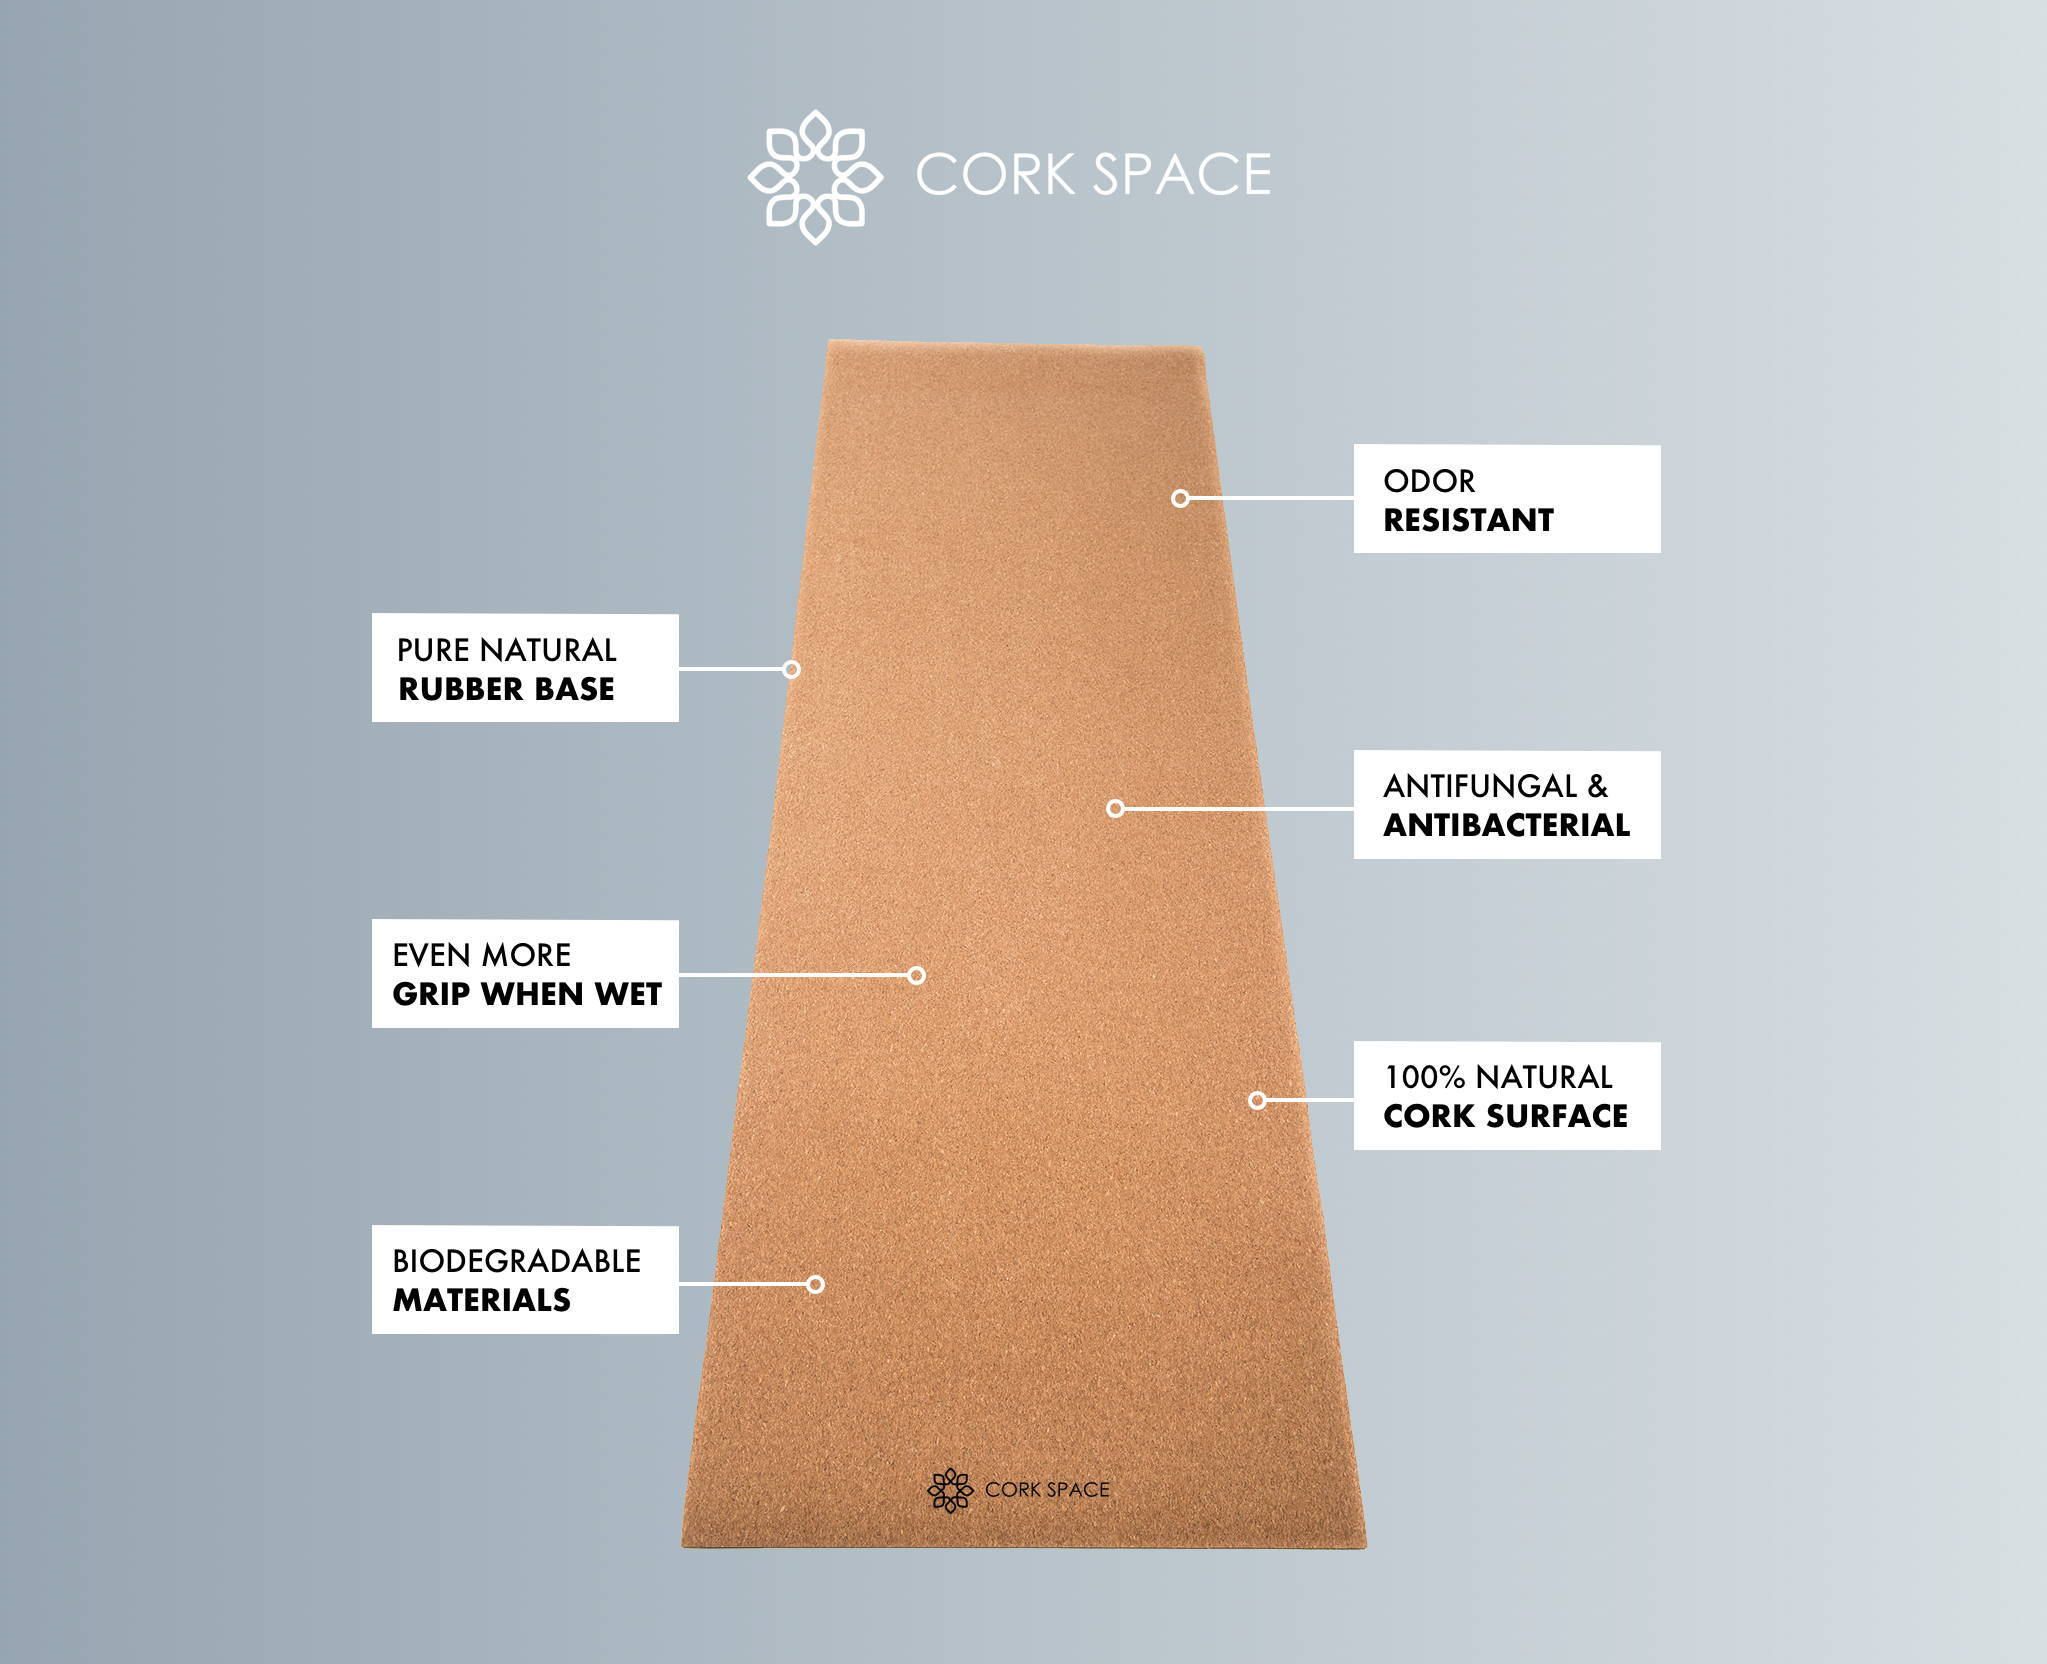 cork space features